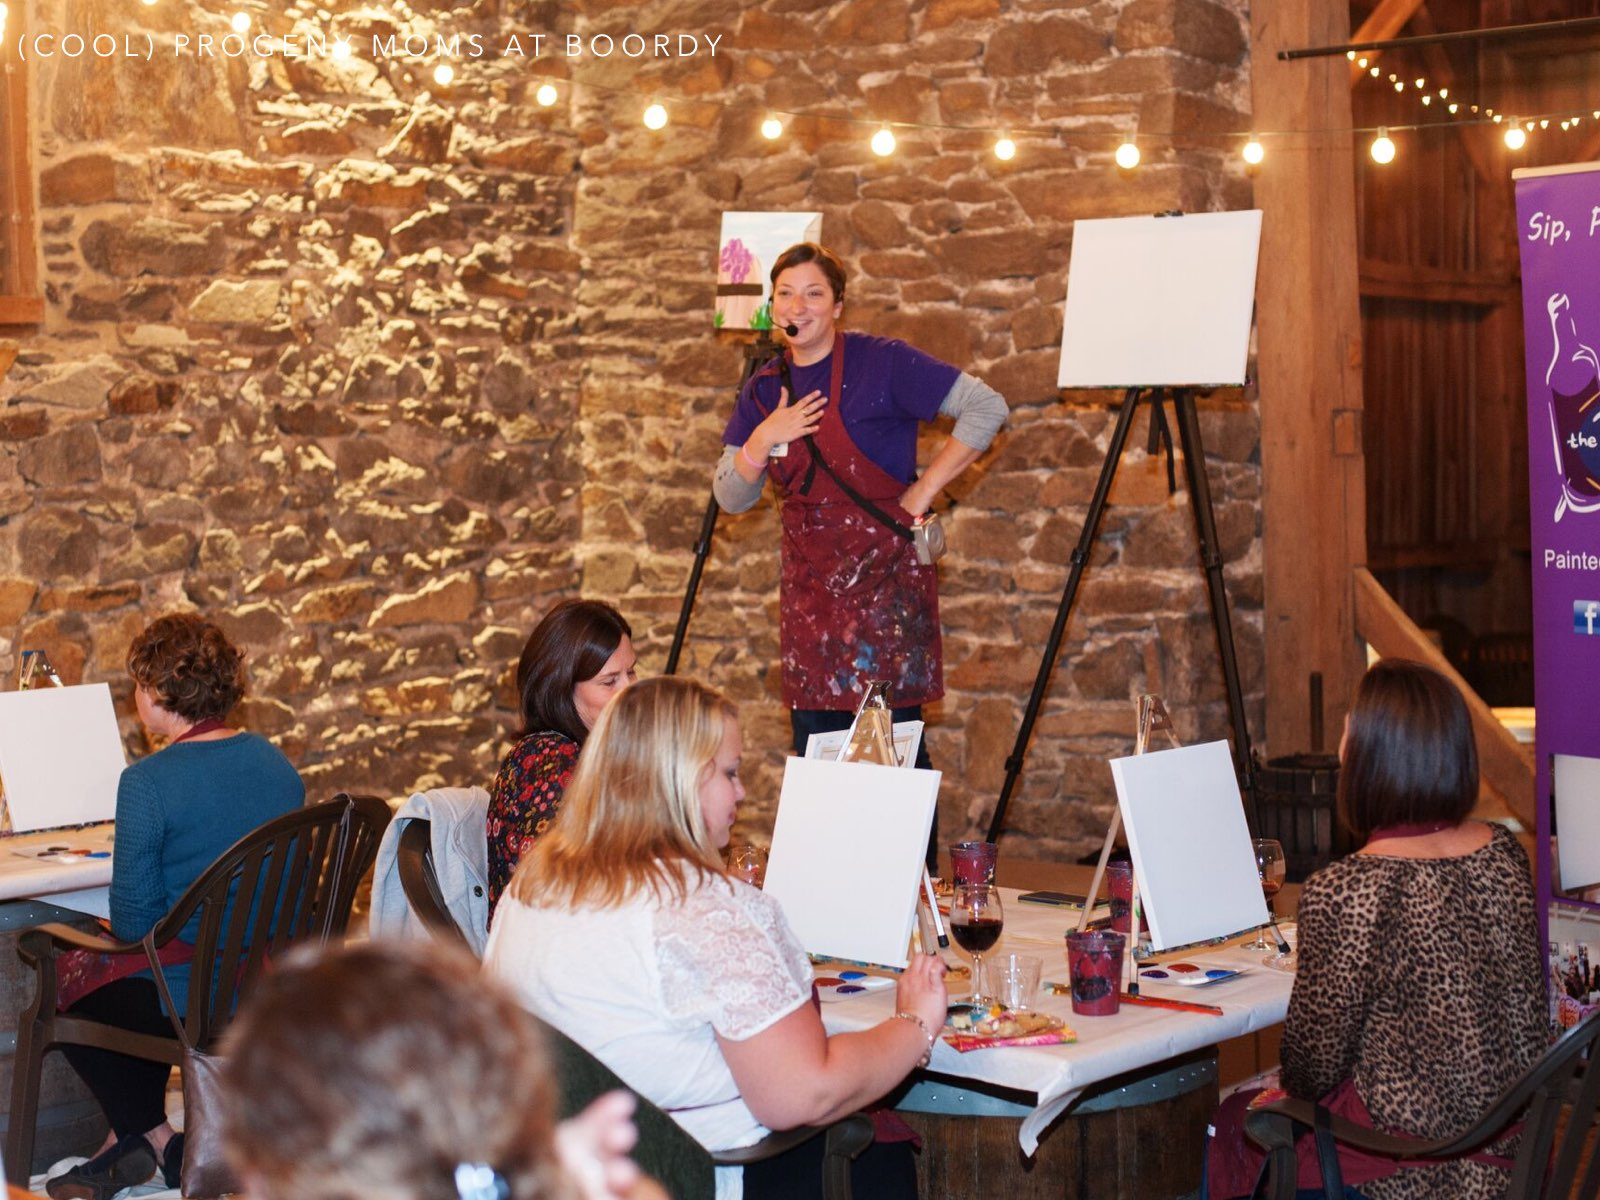 Gallery Cool Moms Night Out At Boordy Cool Progeny